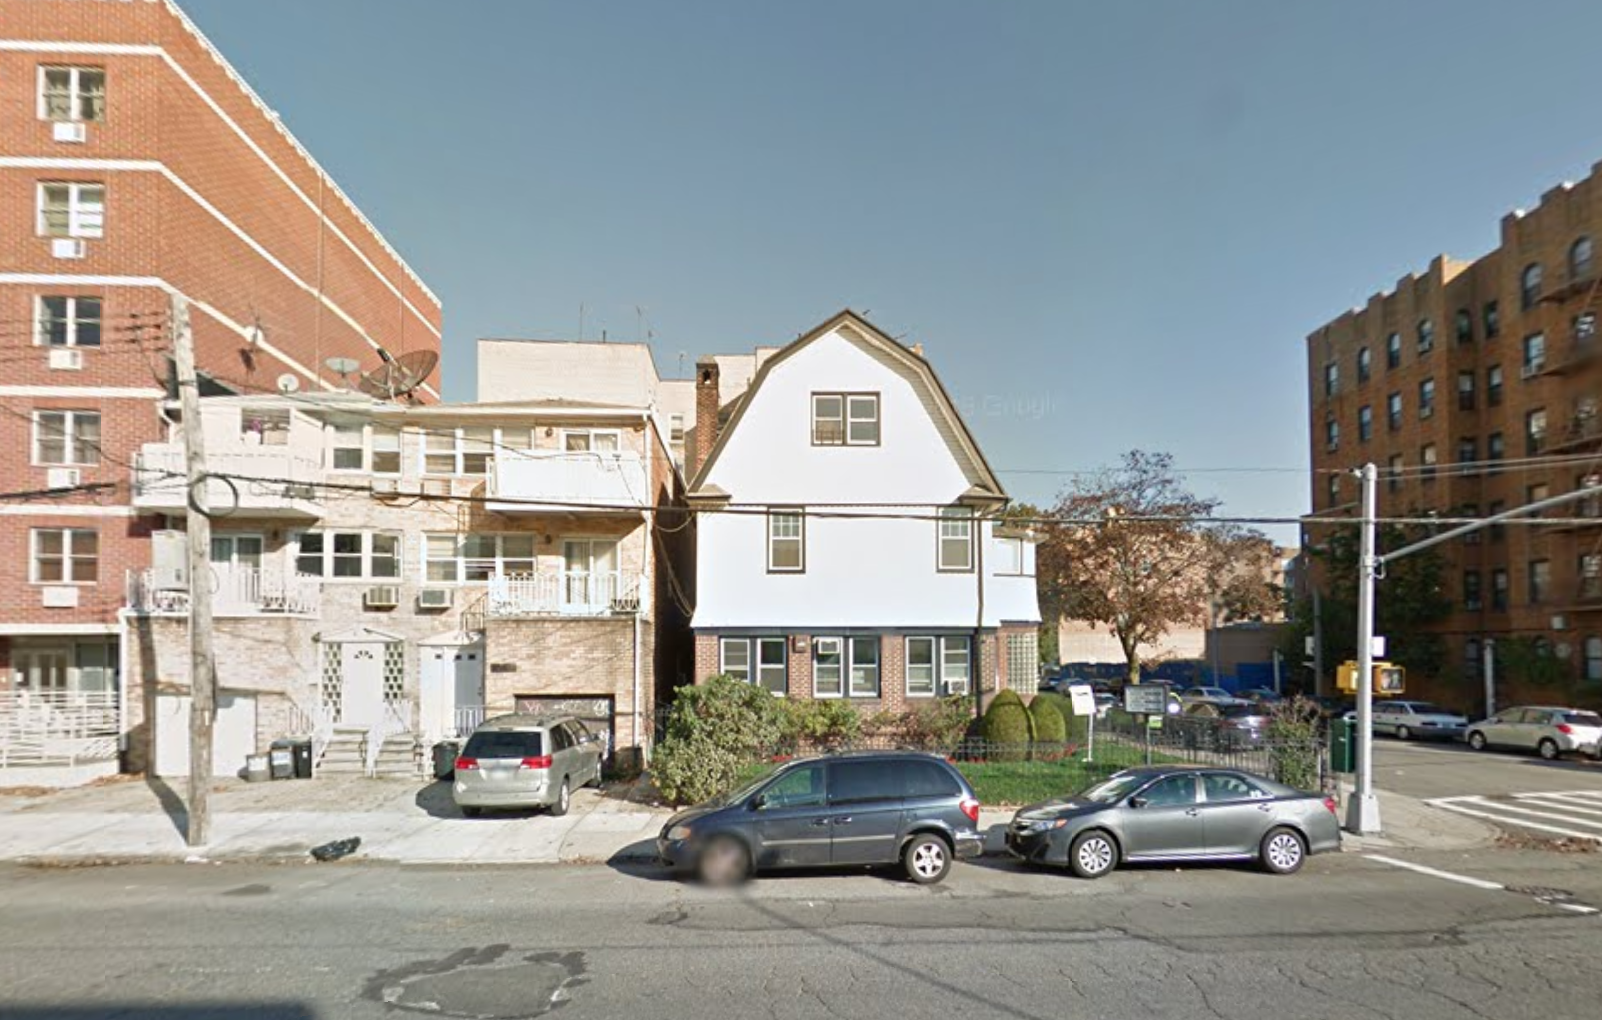 1608 East 19th Street, image via Google Maps